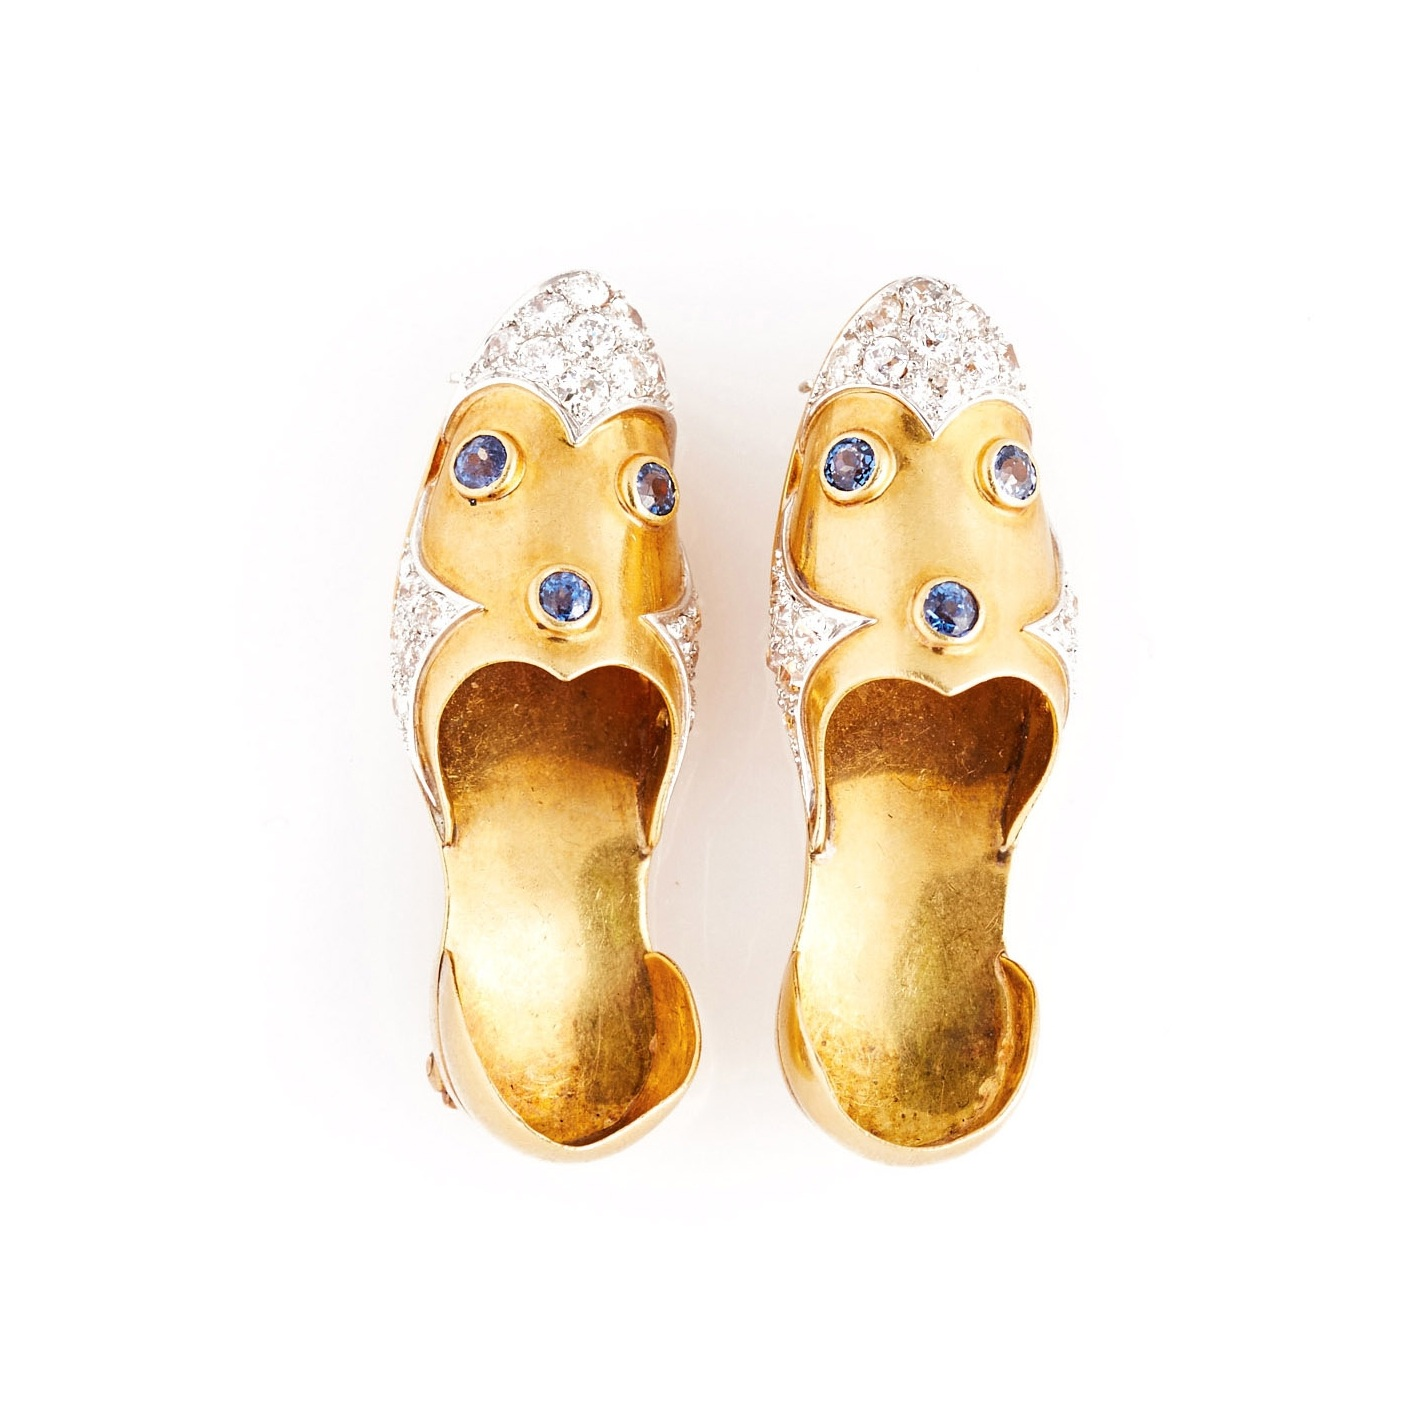 Paul Flato 18k Gem-Set Shoes